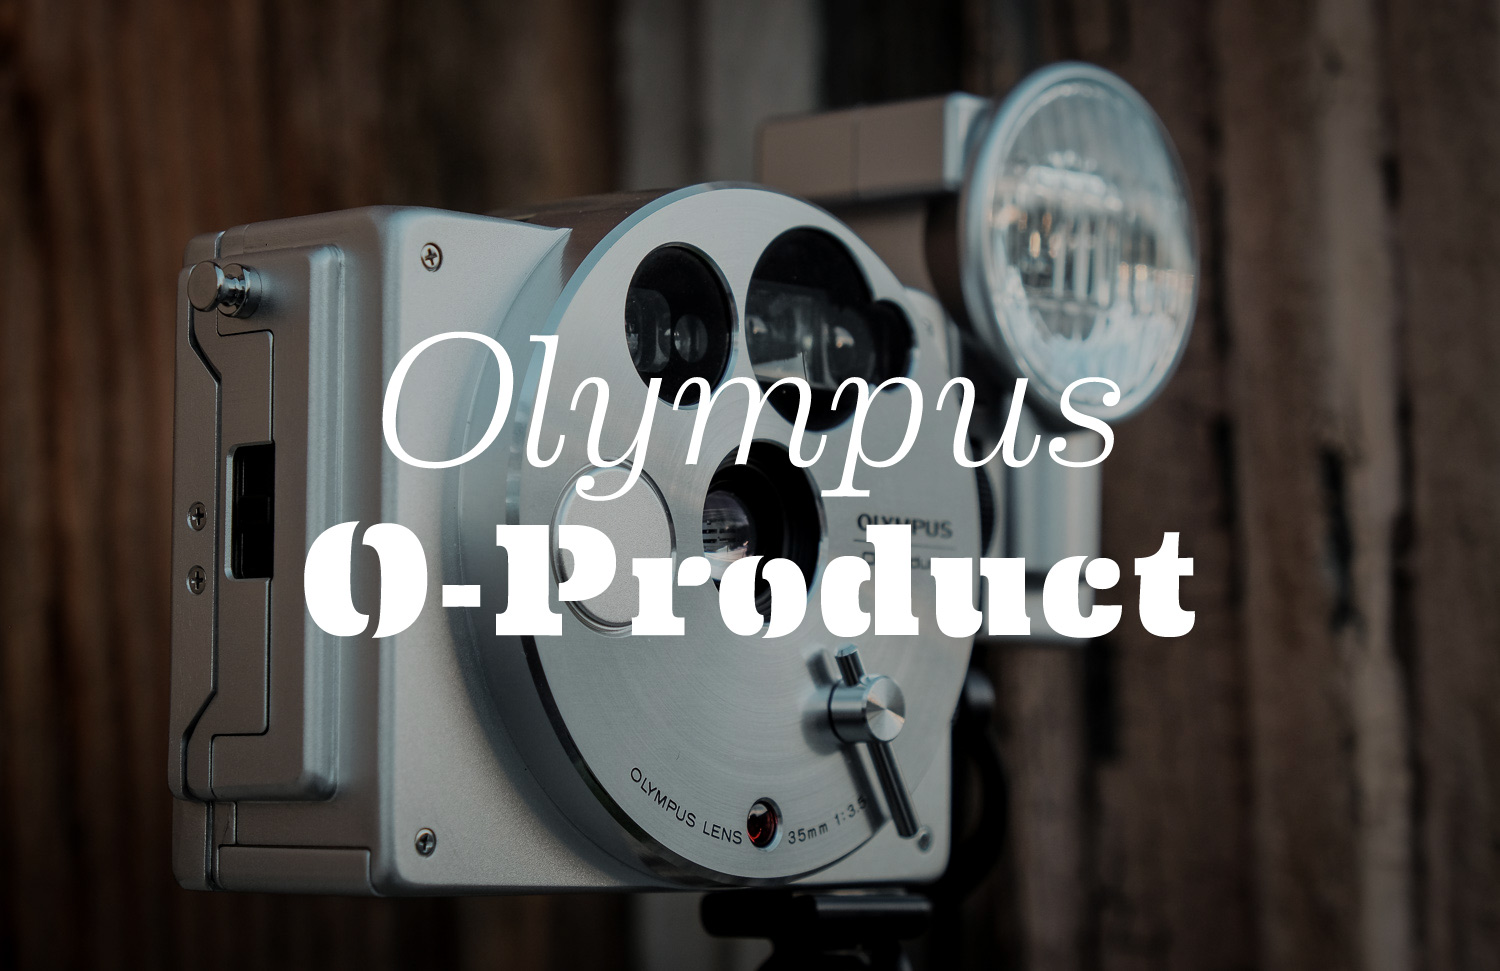 Long before today's retro-styled cameras, there was the quirky O-Product from 1988.